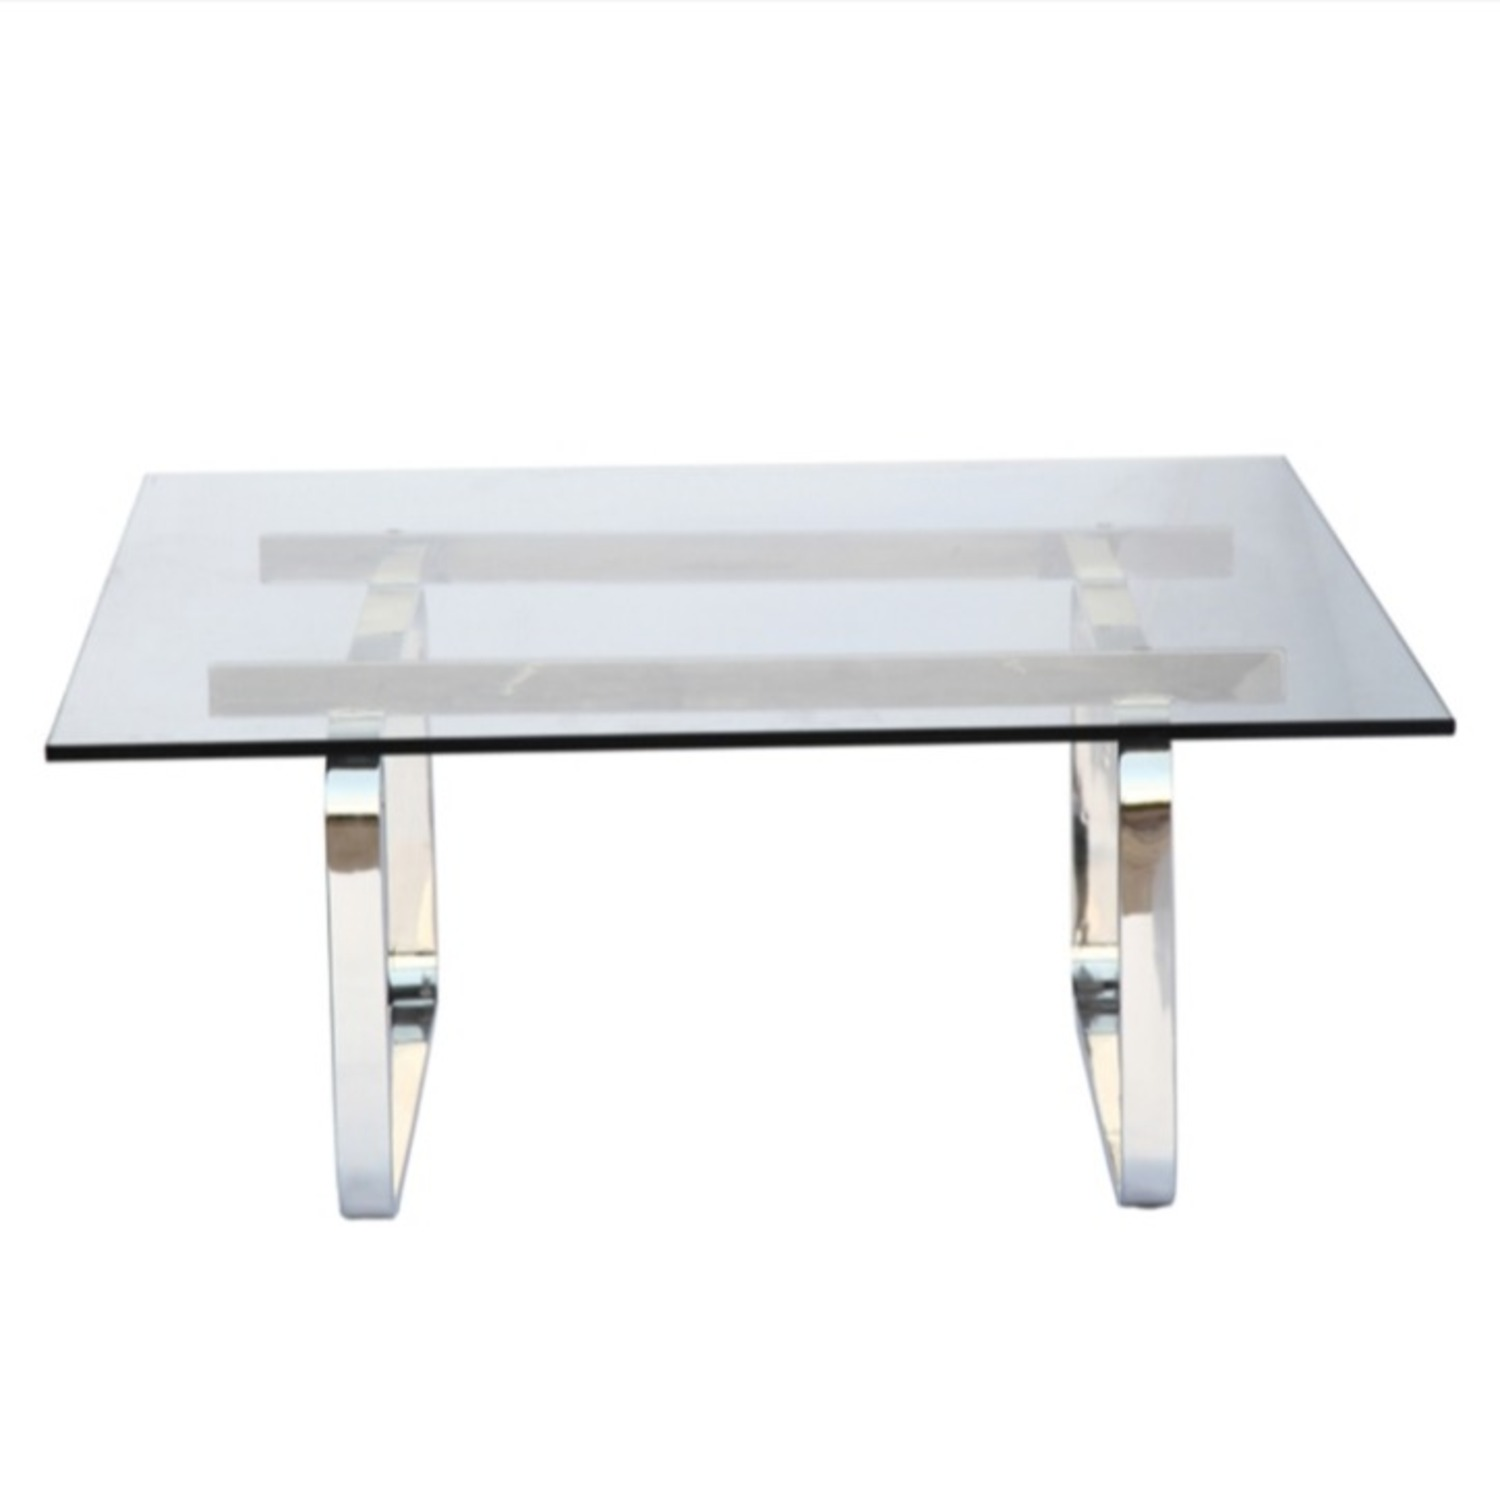 Coffee Table In Clear Stainless Steel - image-2